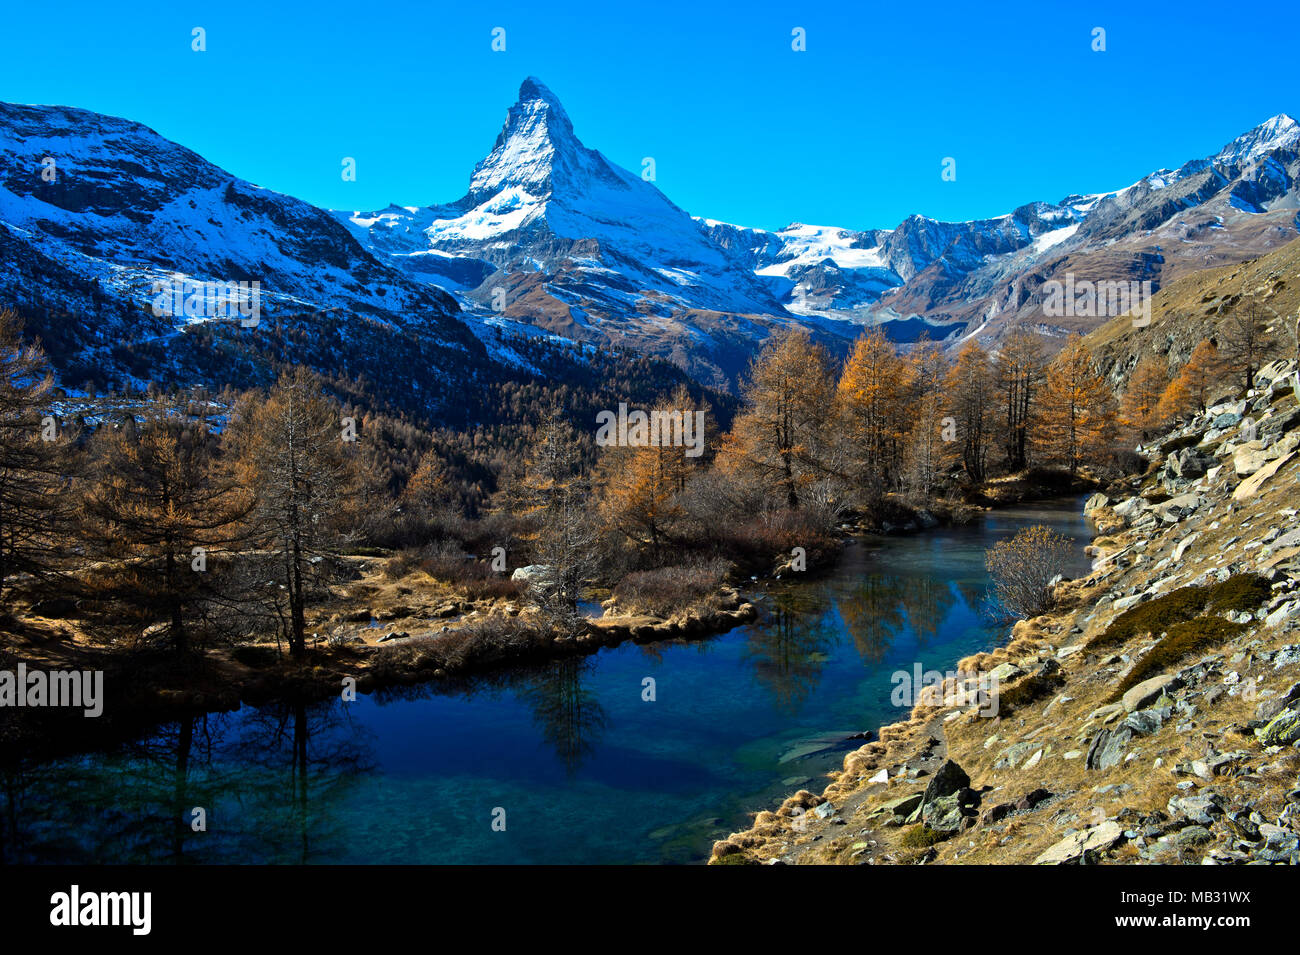 Lake Grindjesee in autumn, with view of the snow-covered Matterhorn, Zermatt, Valais, Switzerland - Stock Image